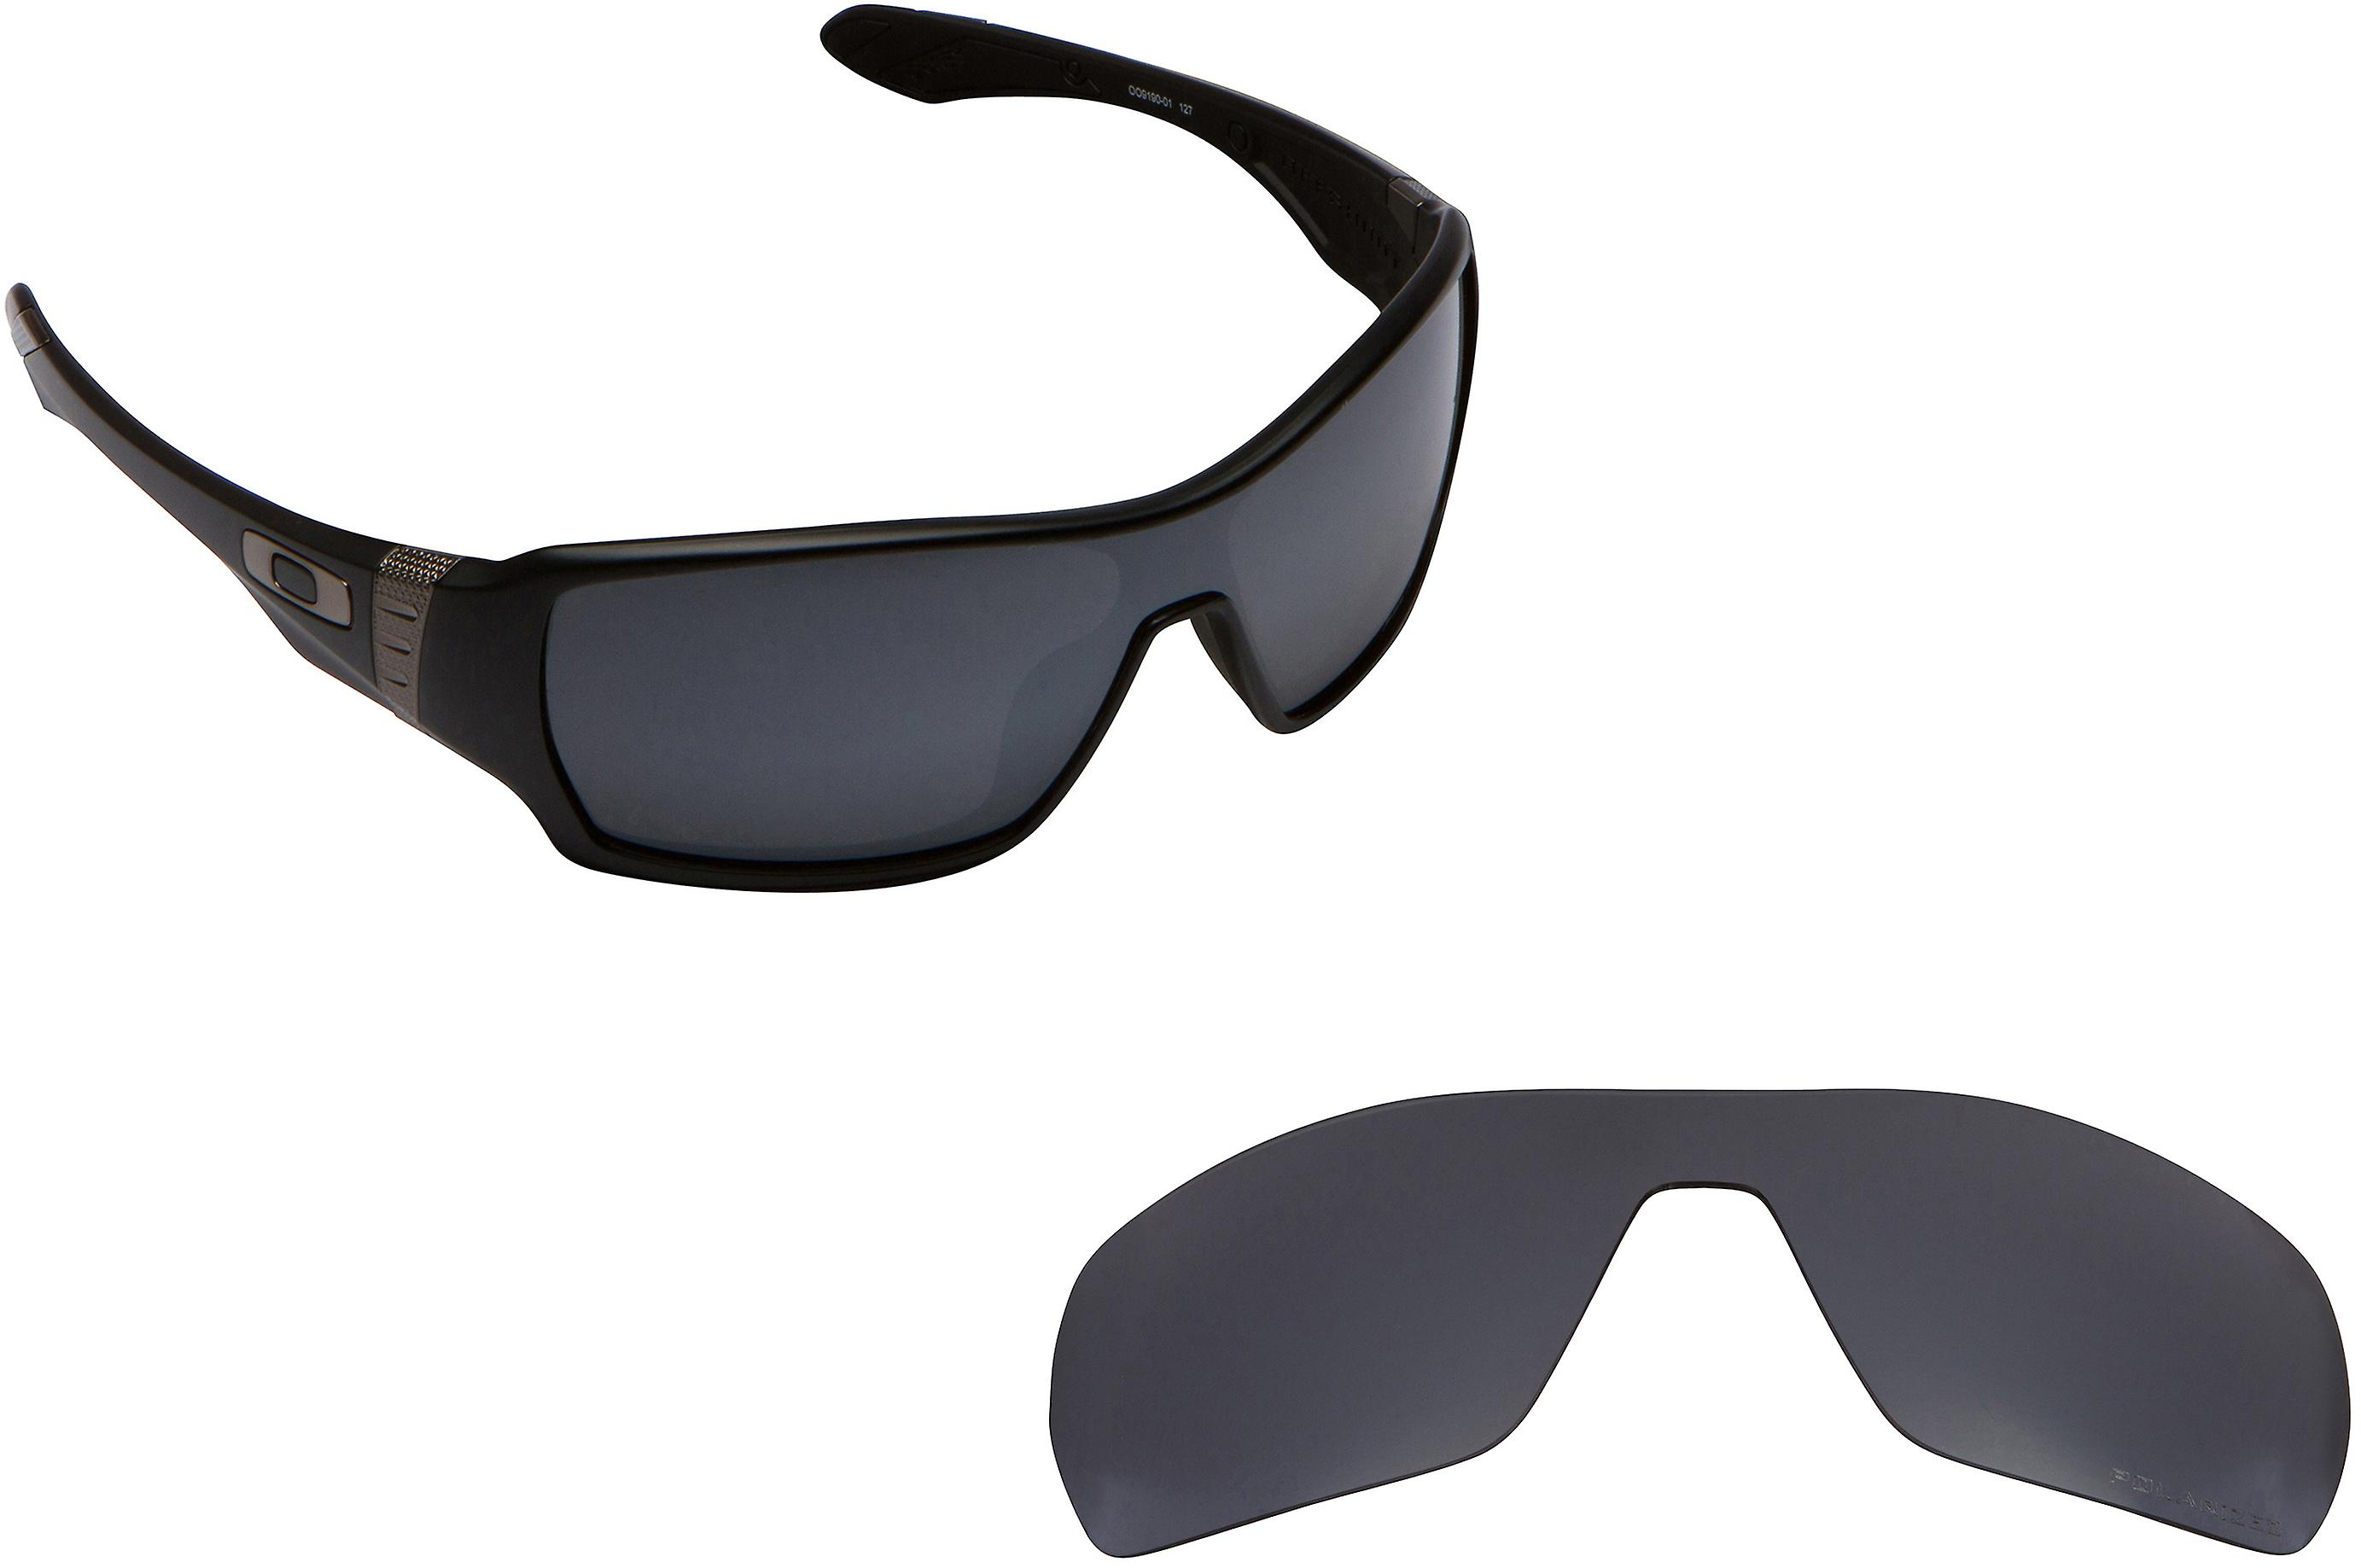 fae4509389 Offshoot Replacement Lenses Polarized Silver by SEEK fits OAKLEY Sunglasses